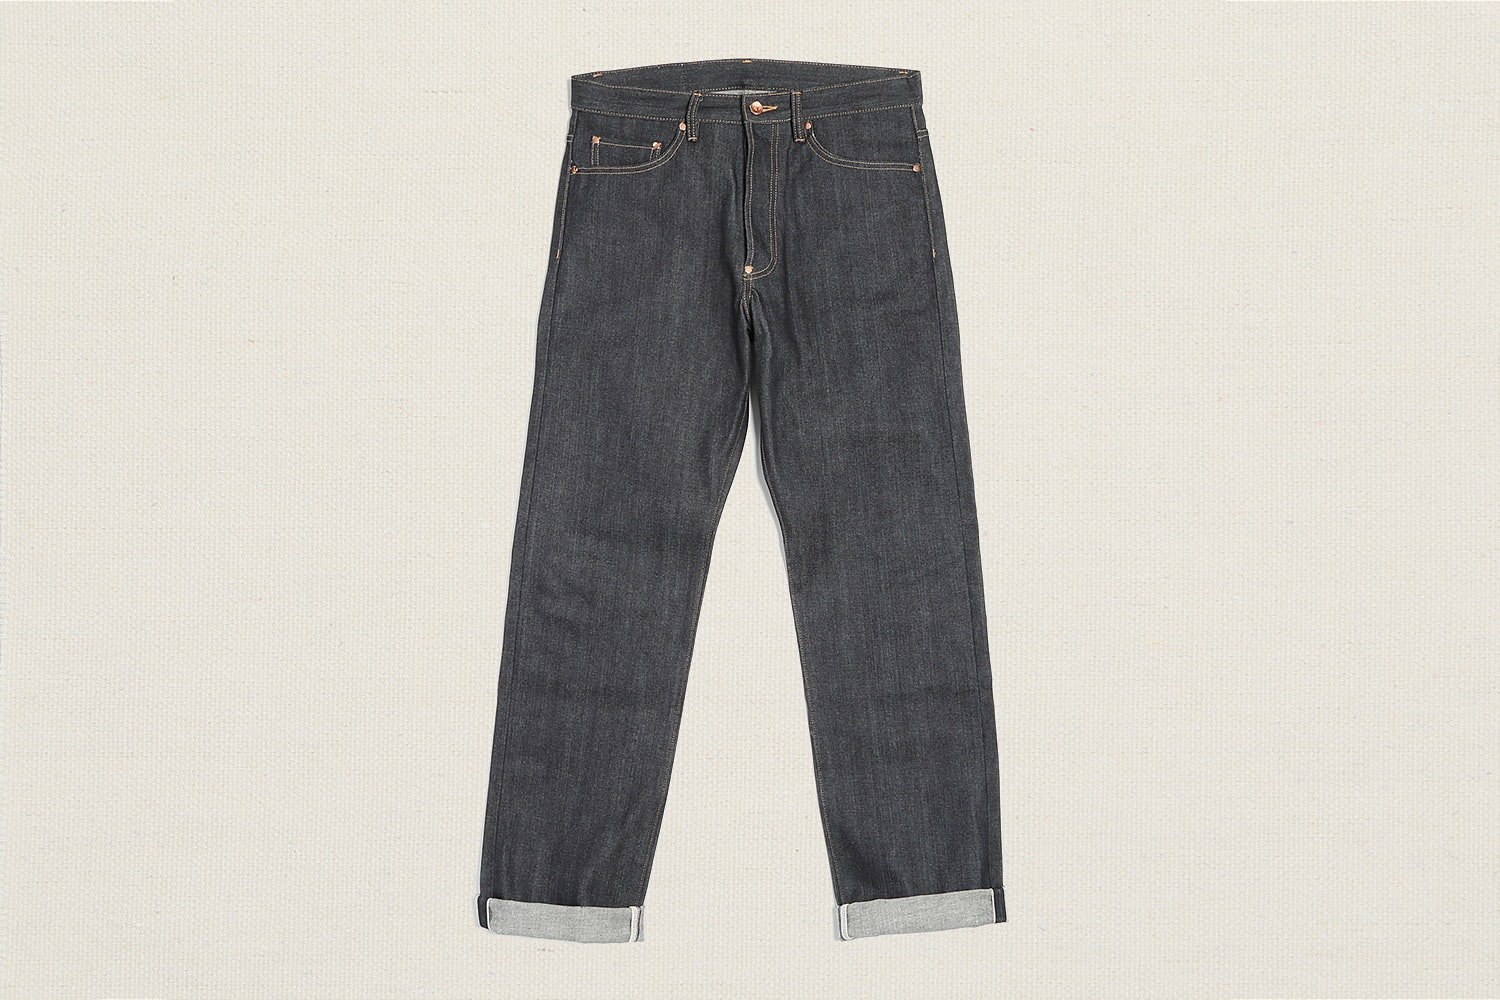 Doublewood Raw Selvage Denim Jeans